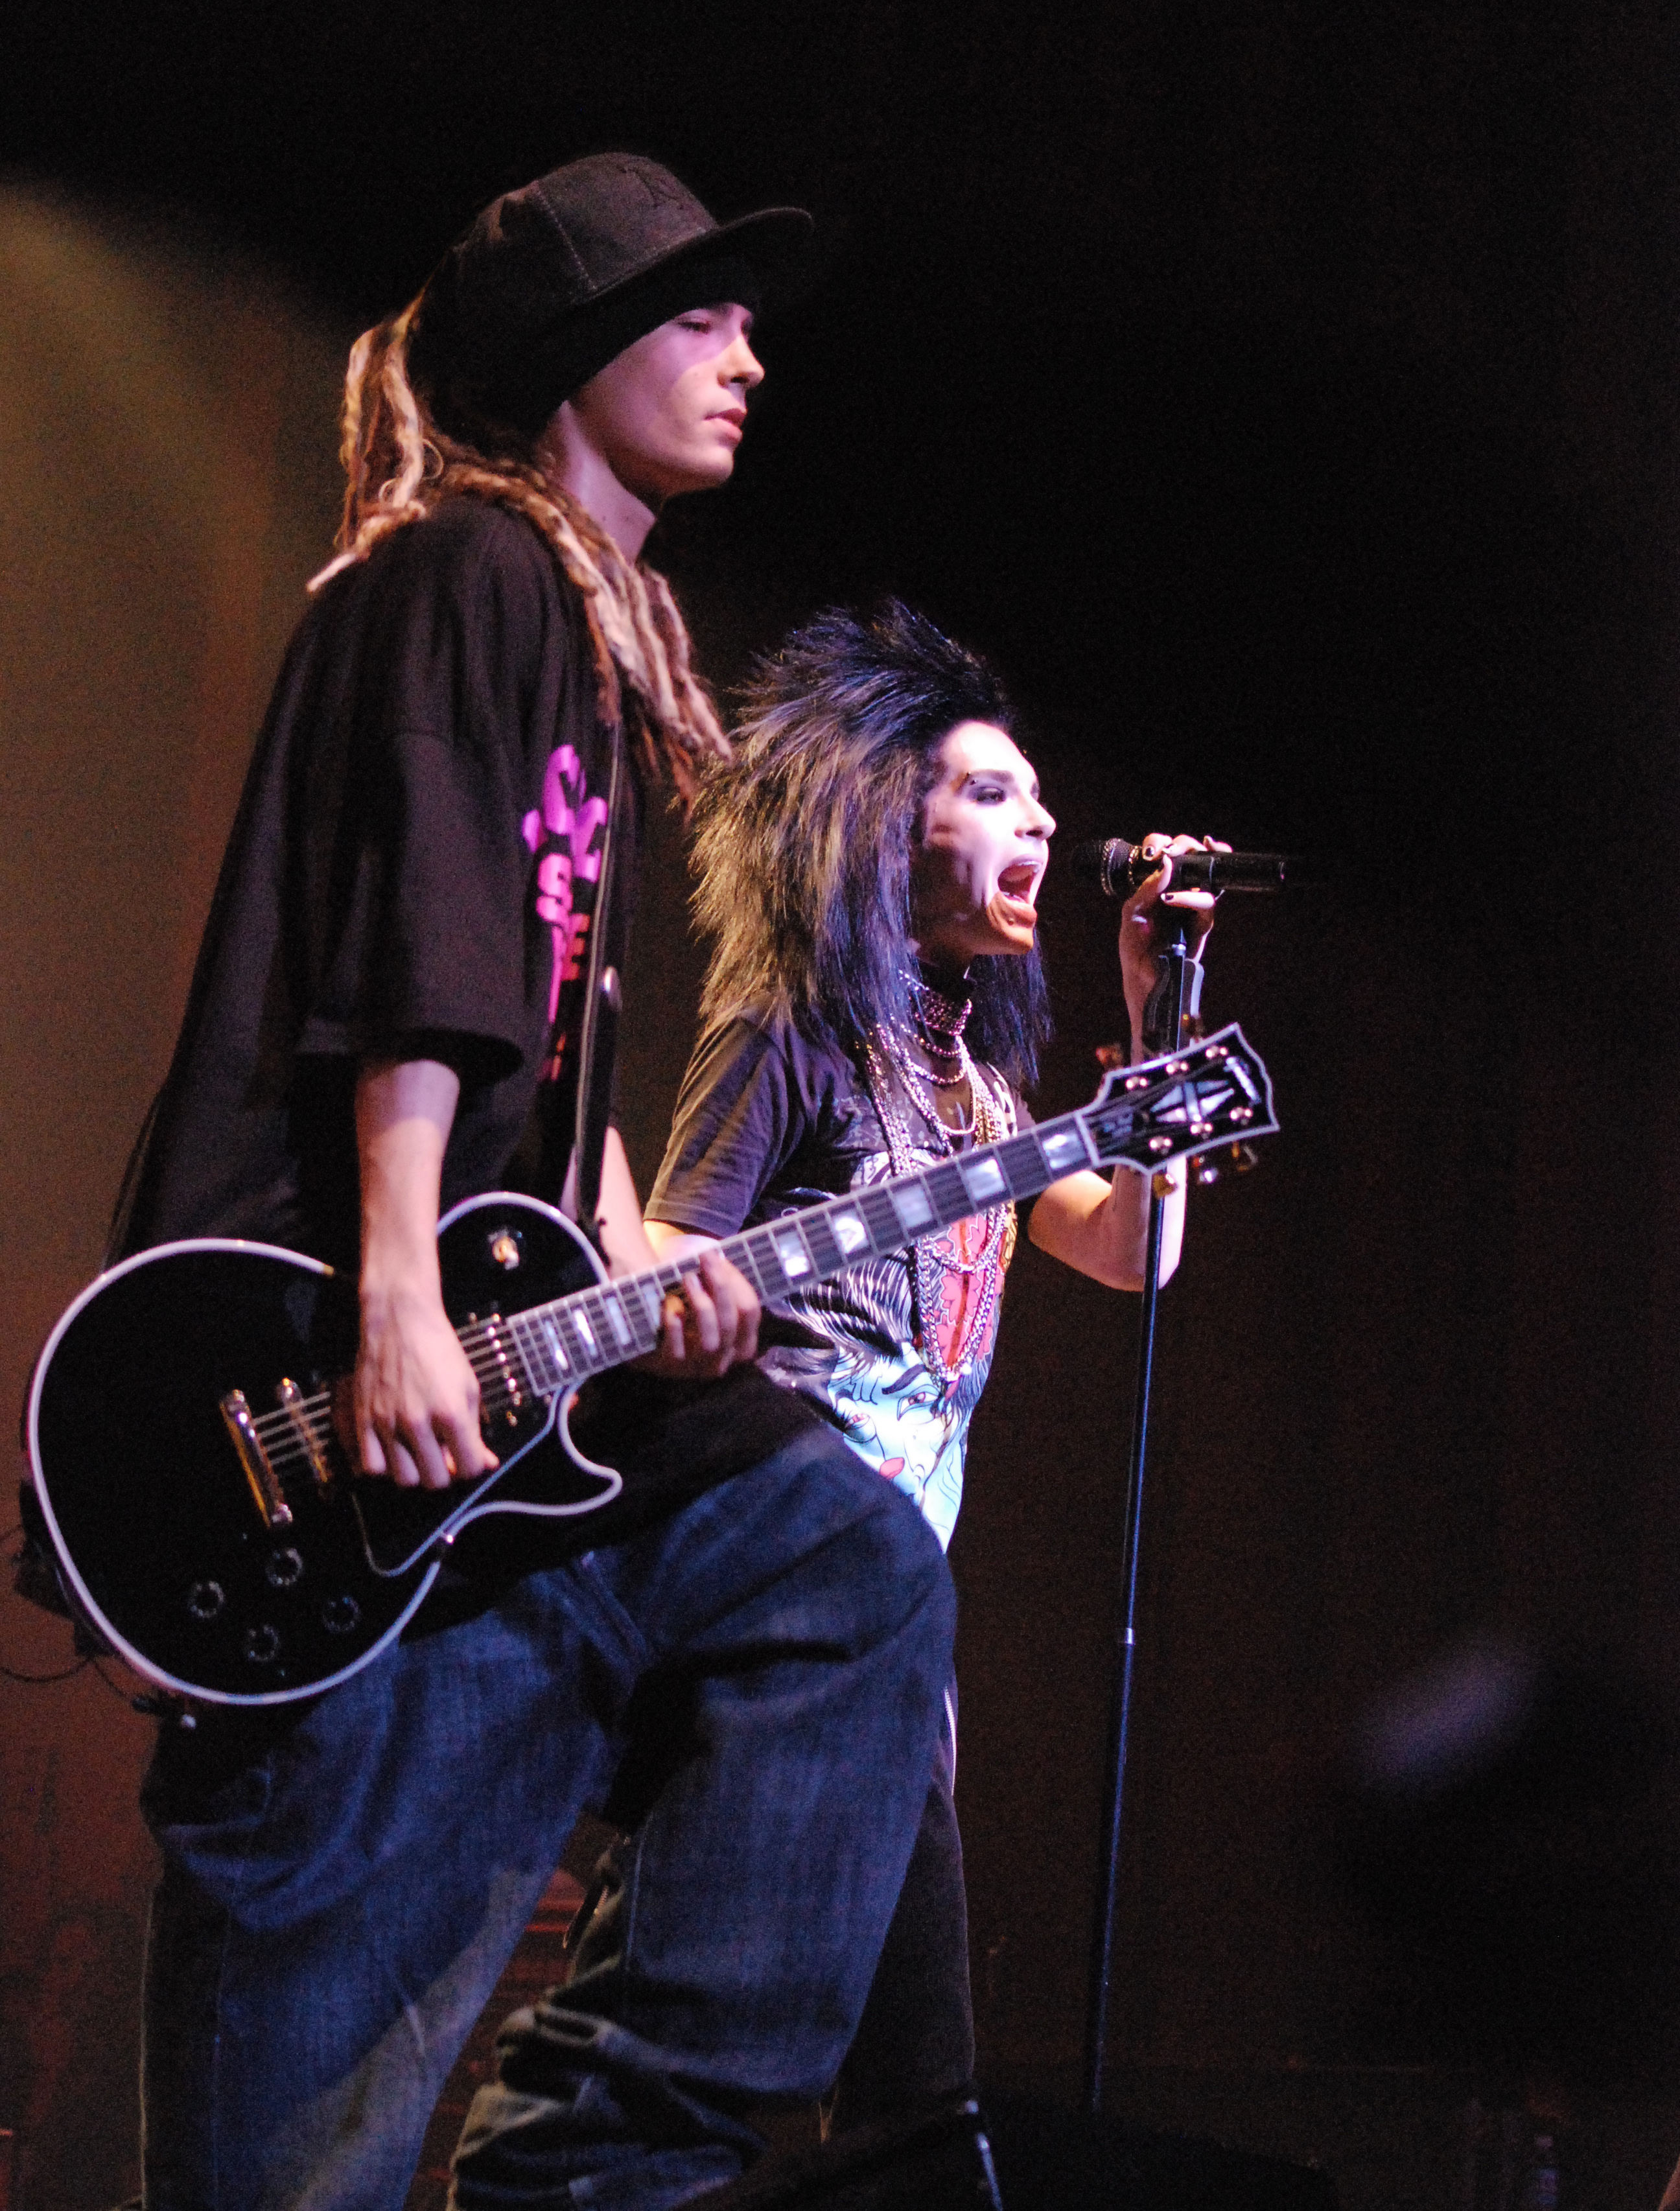 DSC_9580a.jpg - Tokio Hotel - October 26, 2008 - Atlanta, Georgia